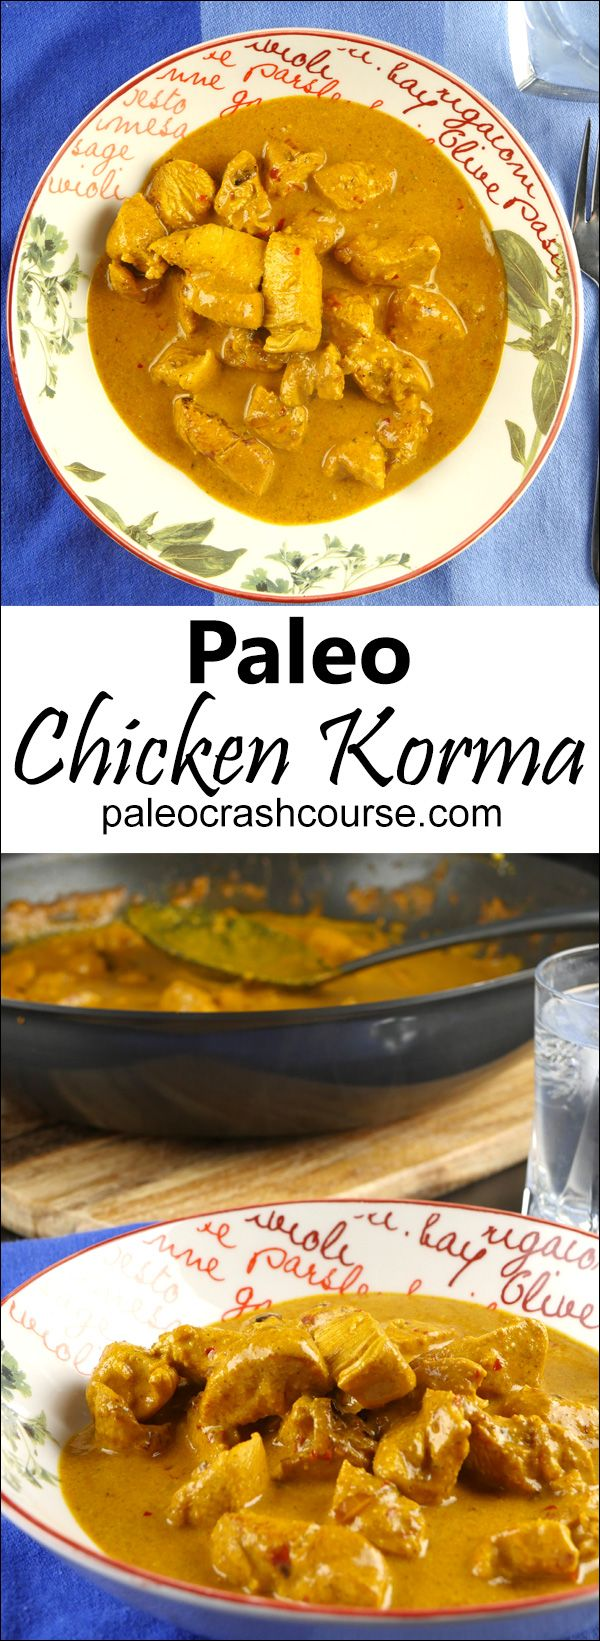 Delicious paleo chicken korma made completely from scratch! It's incredibly simple and will please any curry lover!